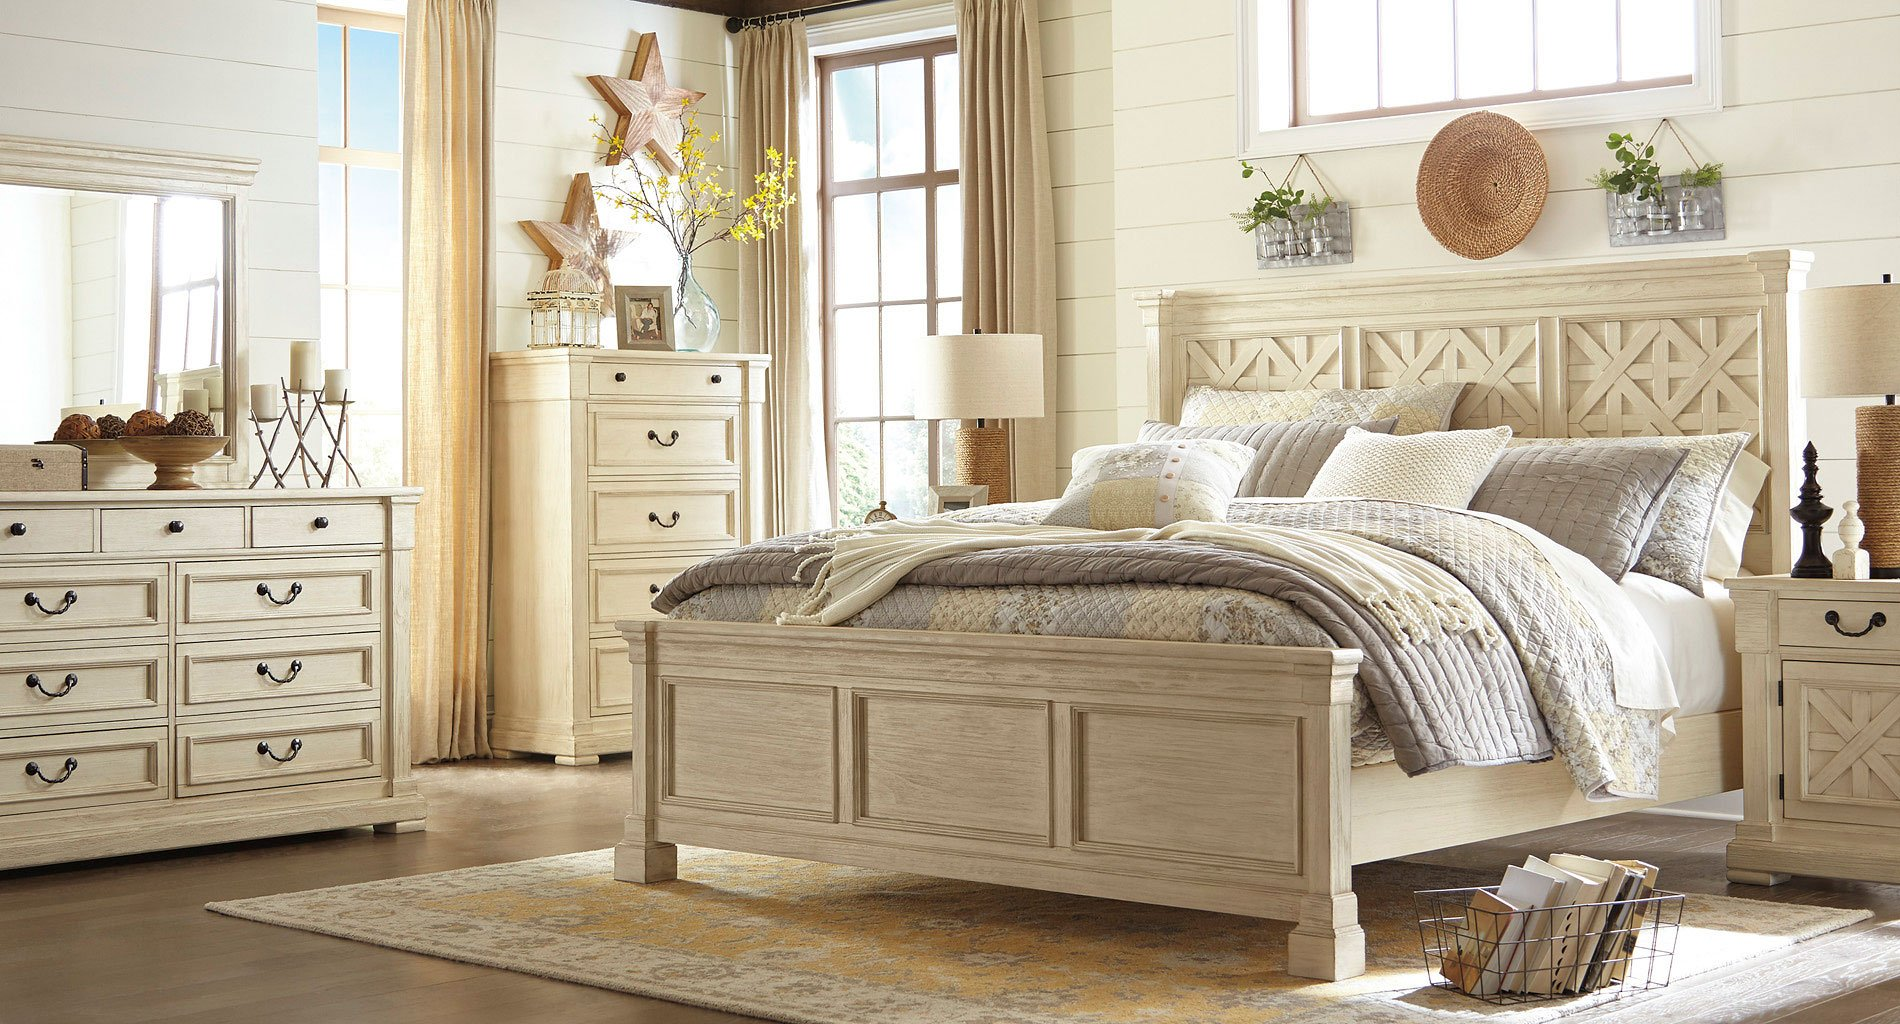 Bedroom Furniture Reviews: Bolanburg Panel Bedroom Set Signature Design, 4 Reviews